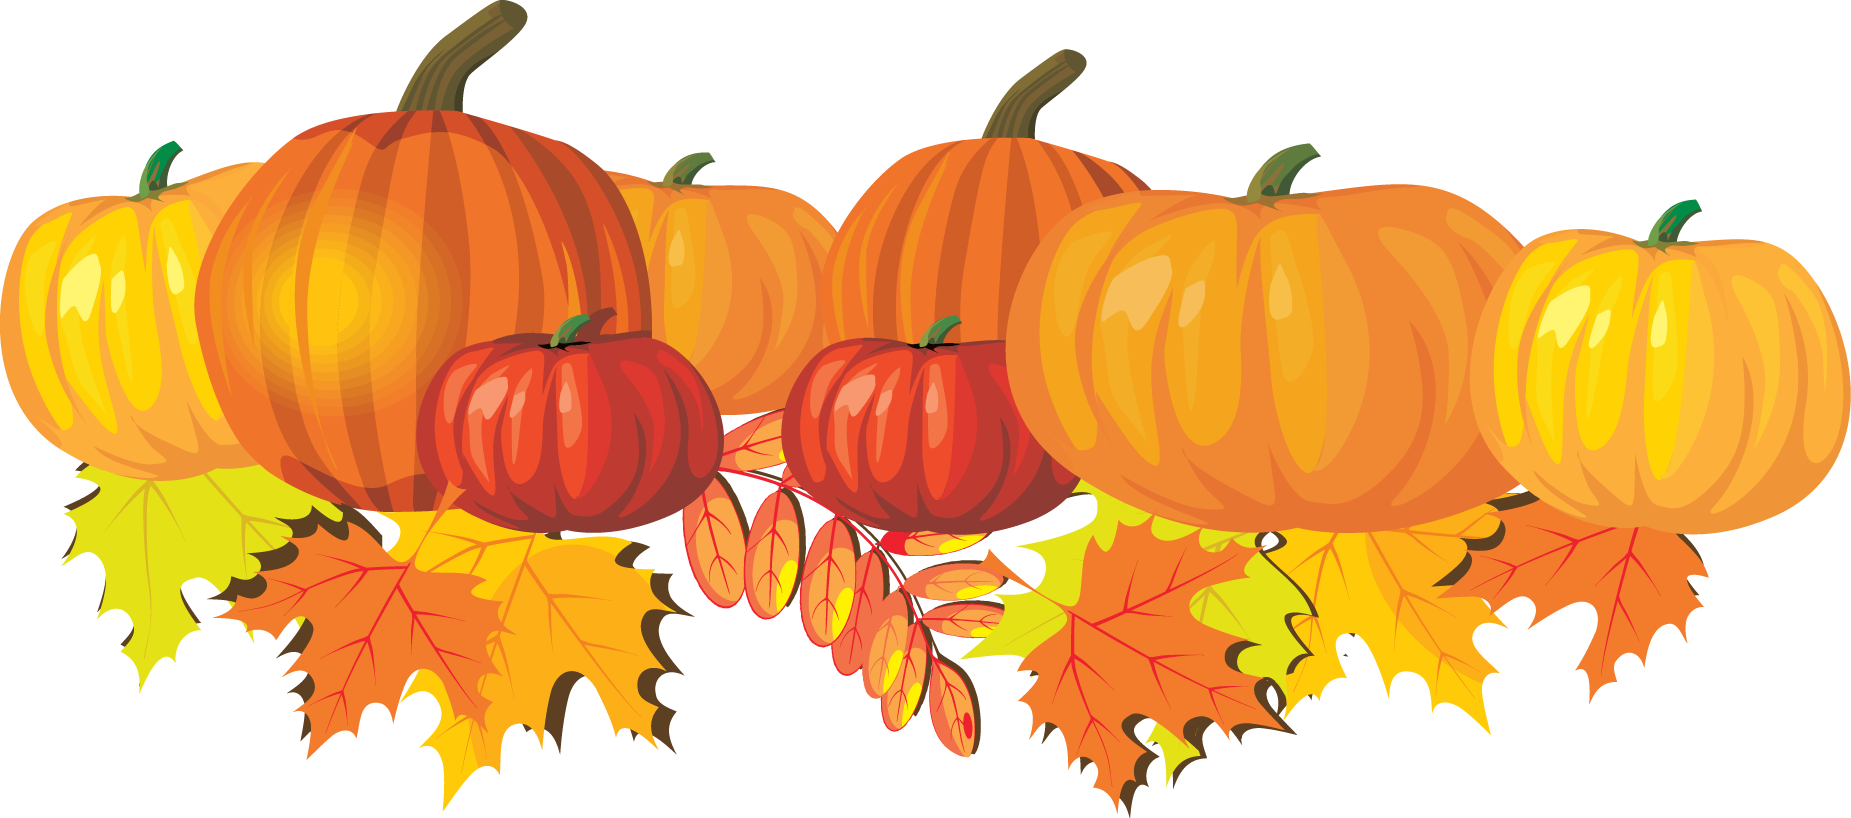 Clip Art Fall Leaves Clip Art Free pumpkins and fall leaves clipart kid if you have any questions please contact katie bowden with our social